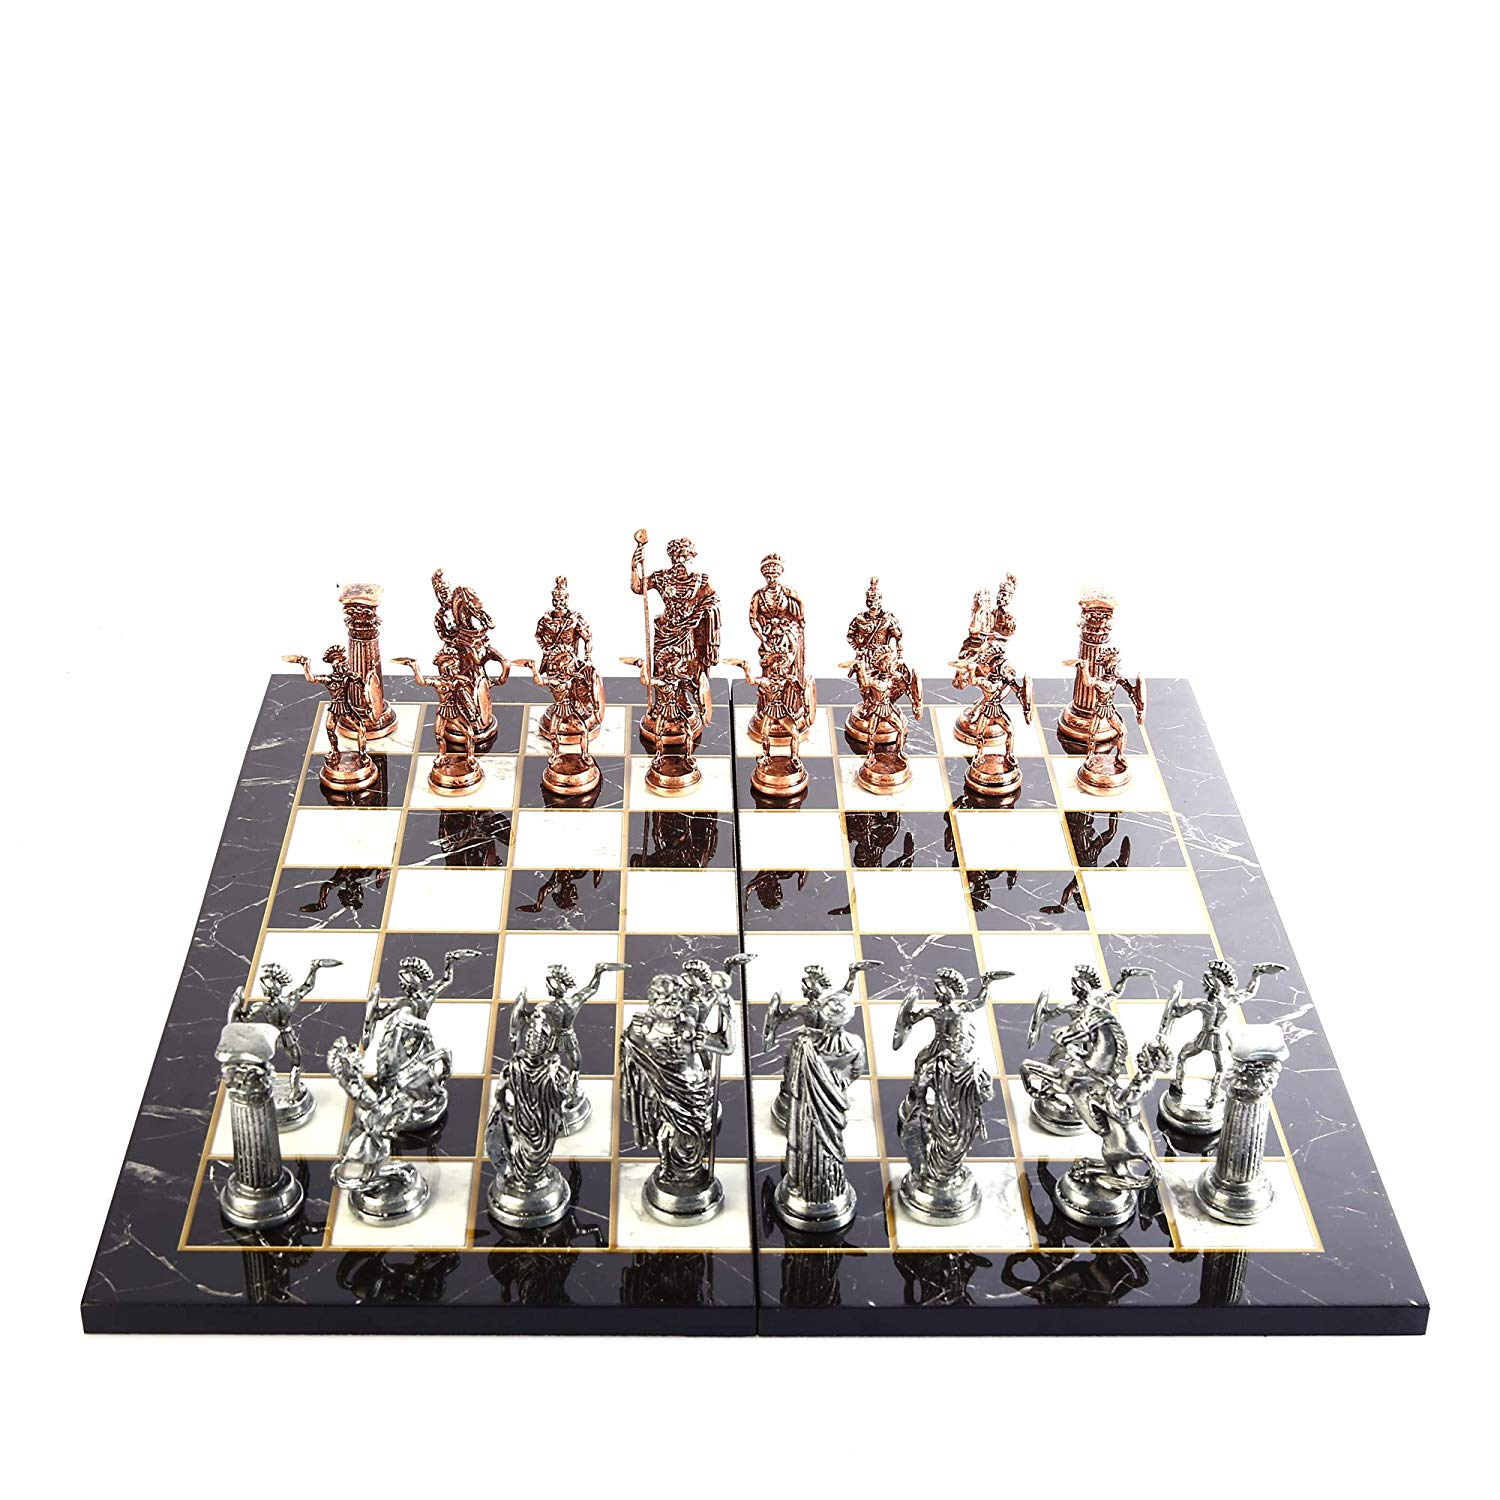 Historical Antique Copper Rome Figures Metal Chess Set for Adult,Handmade Pieces and Marble Design Wood Chess Board King 11 cm